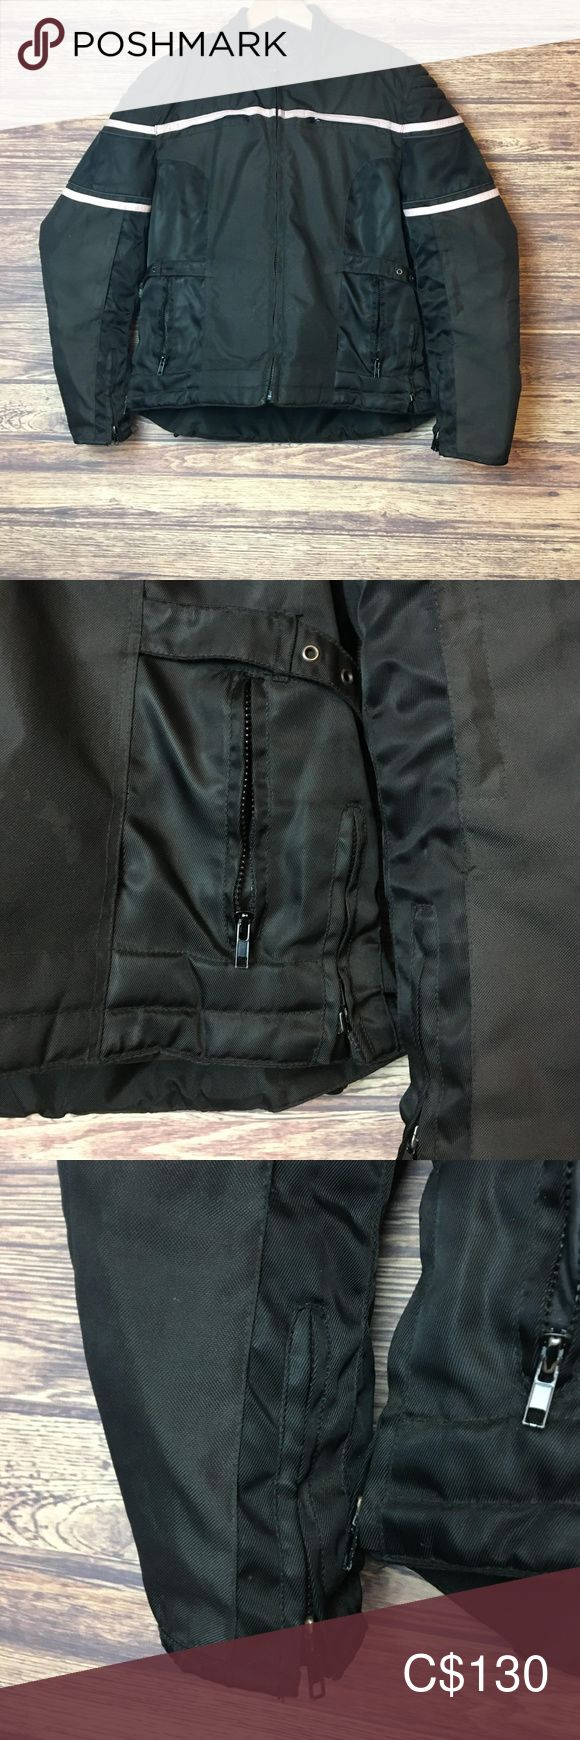 Ladies Screaming Eagle Motorcycle Riding Jacket Ladies XXL Screaming Eagle Mesh Motorcycle Biker Riding Coat Jacket. Color Black. Features hand pockets, zip cuffs, adjustable buckle on side front, and padded shoulders and elbows. Size XXL. Excellent condition. All zippers work. No damage or stain. See photos for full details.  Measurements Overall Length: 25